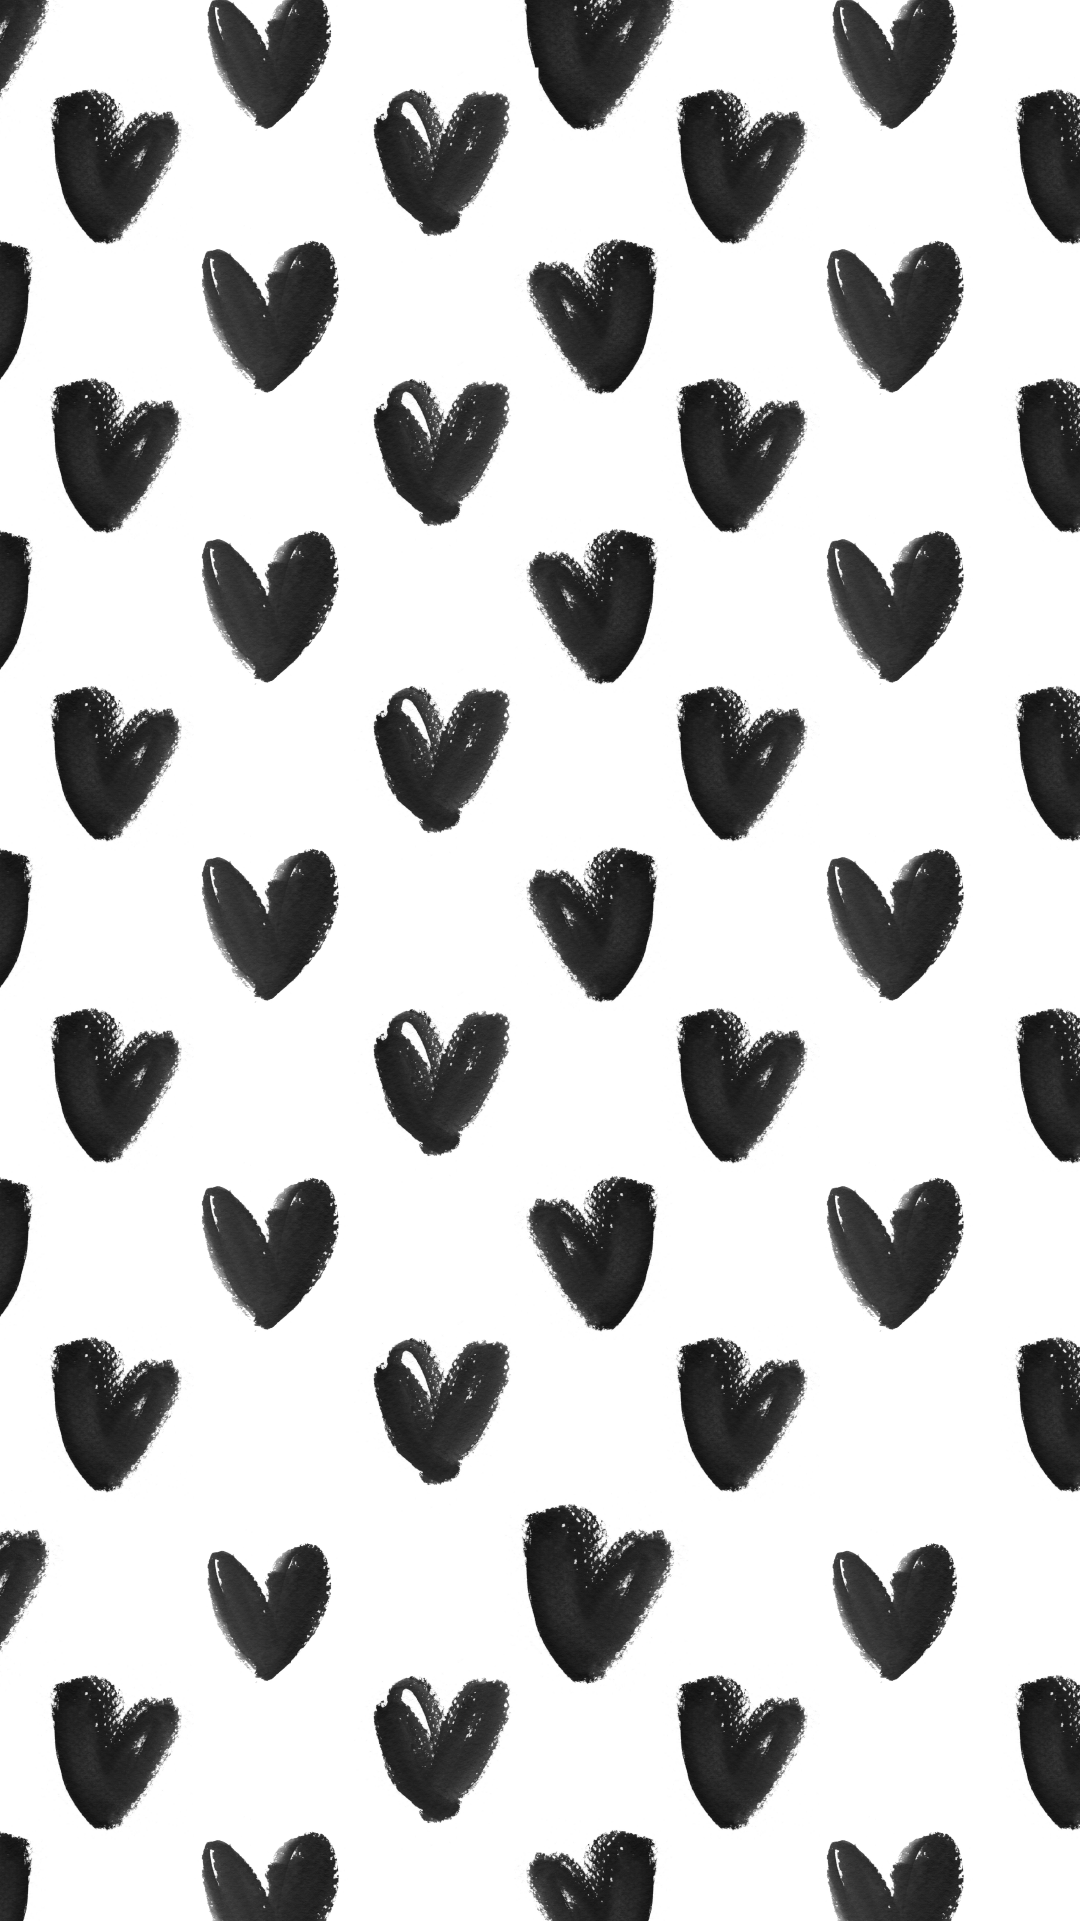 Black-White-watercolour-hearts-iphone-background-phone-lock-screen-wallpaper-wp3403347